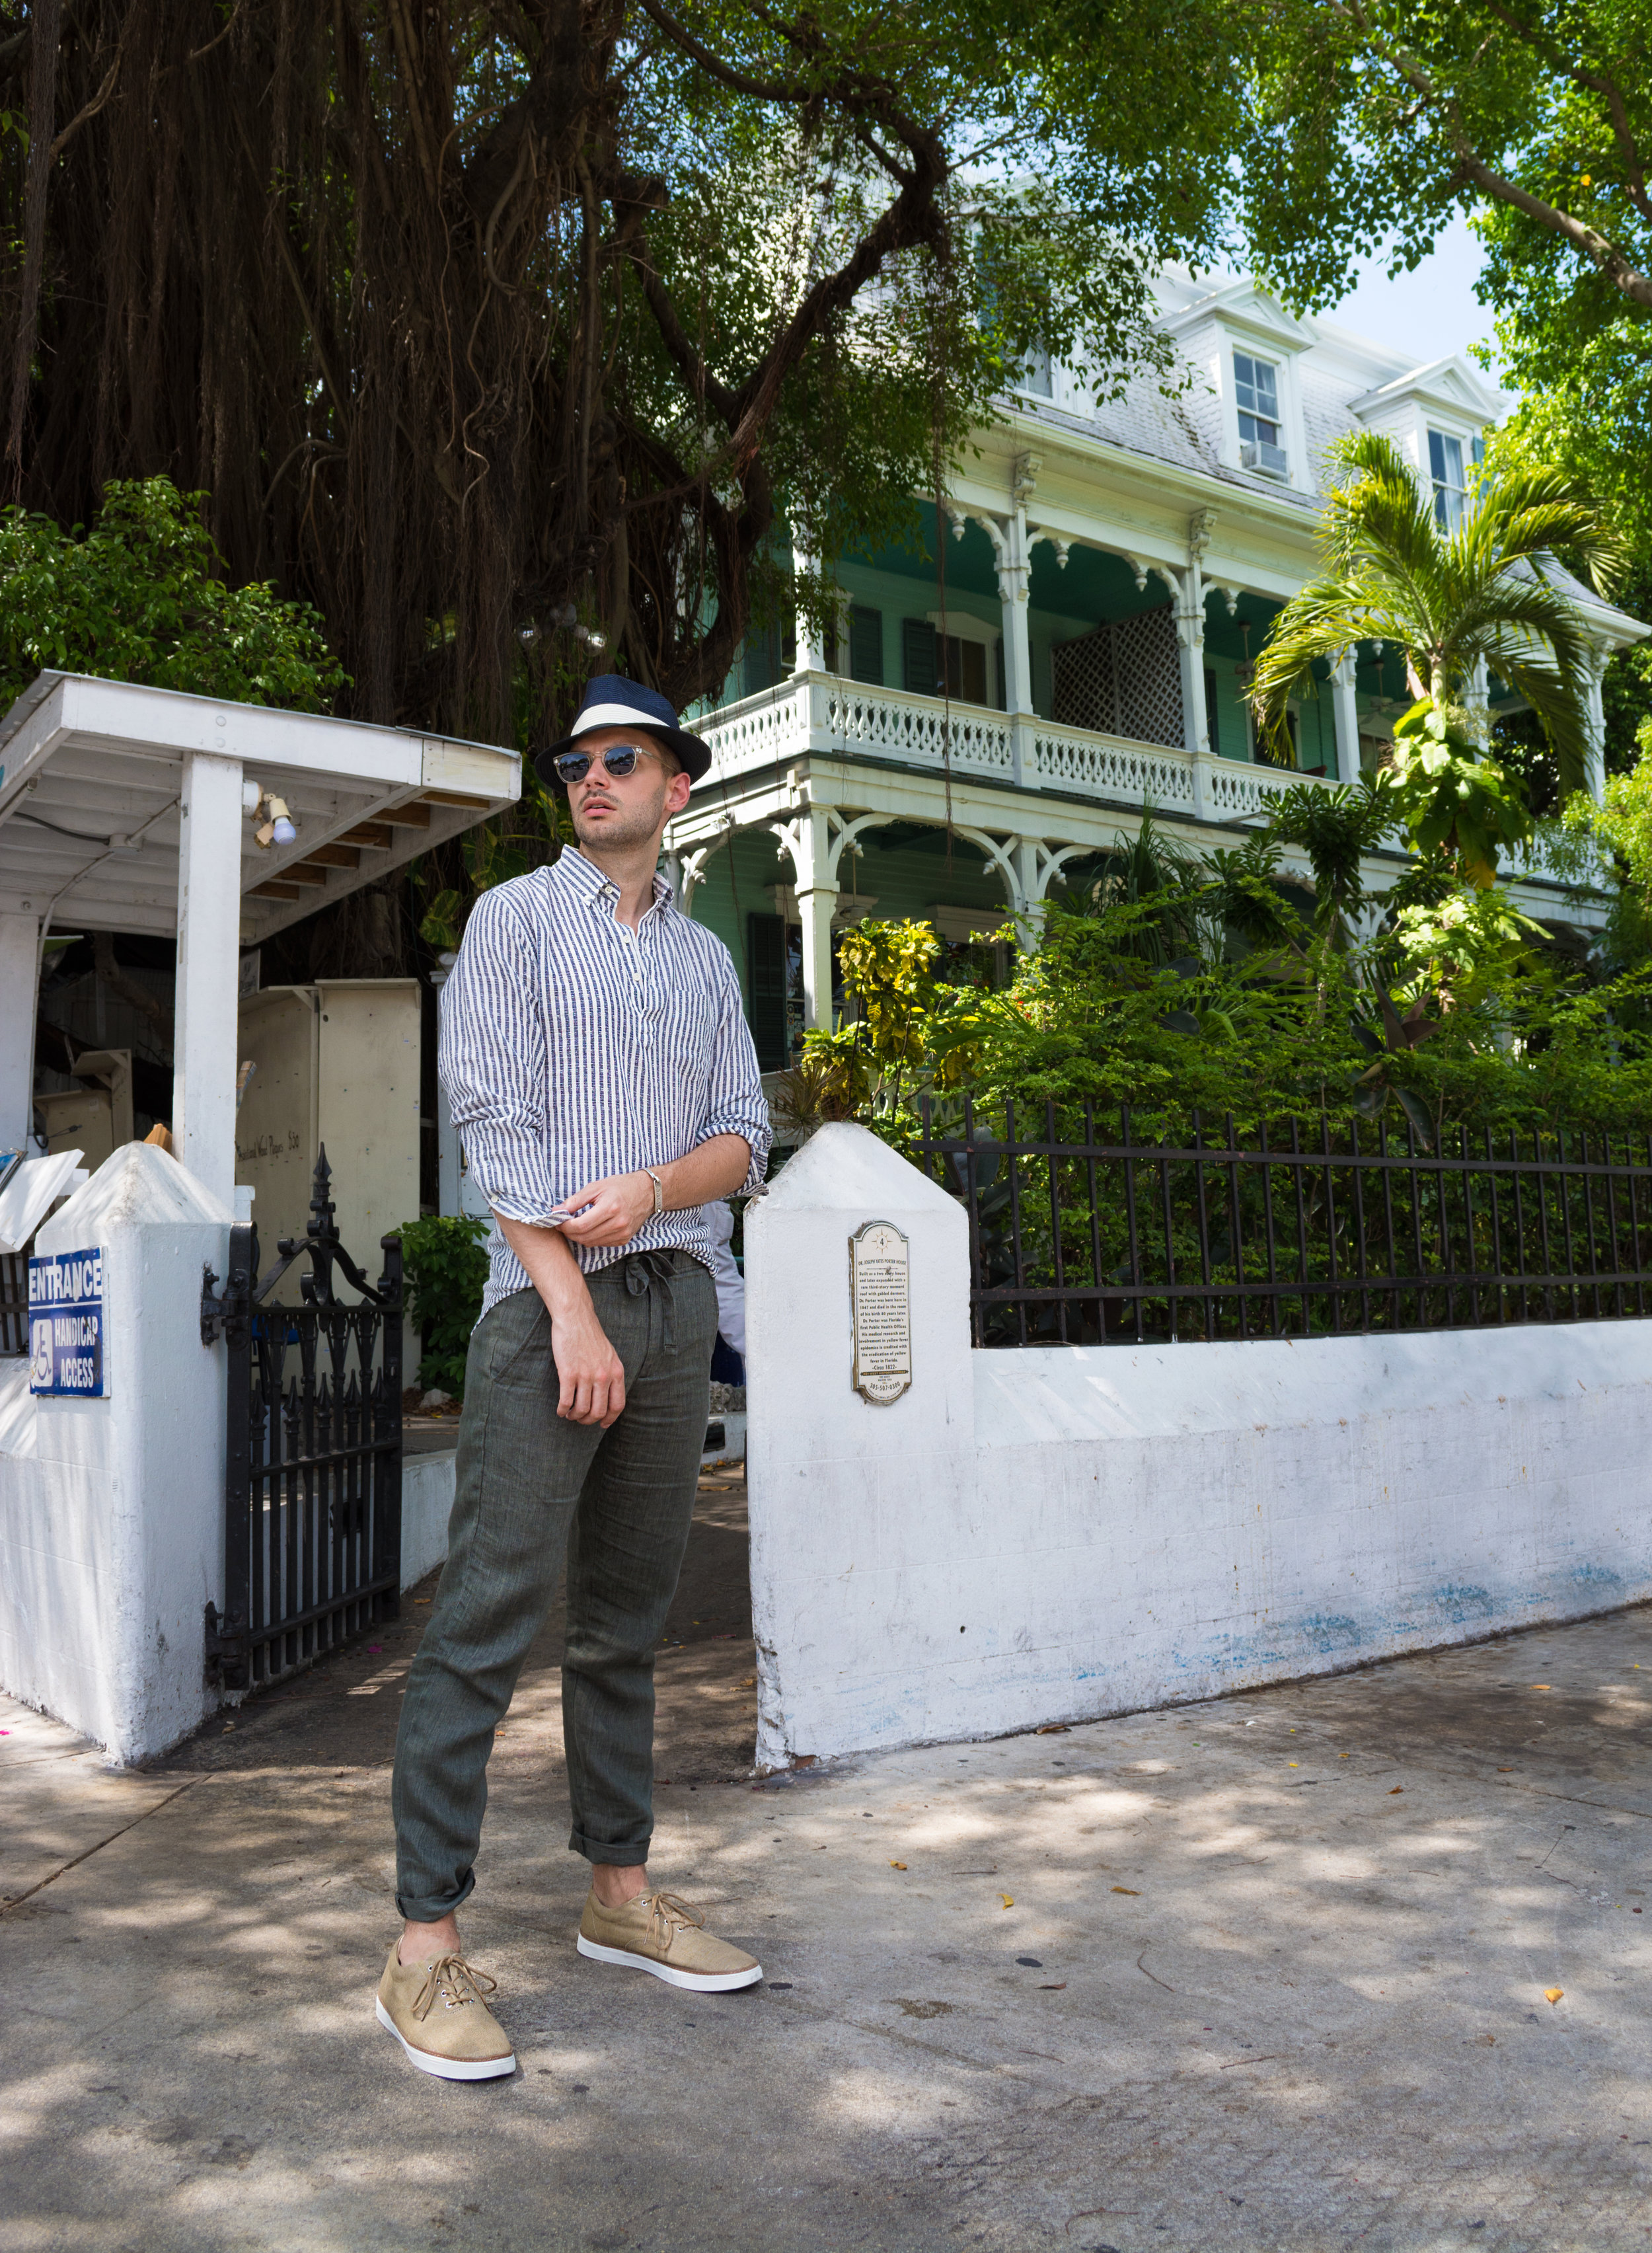 Otter Expedition: Gates of Key West